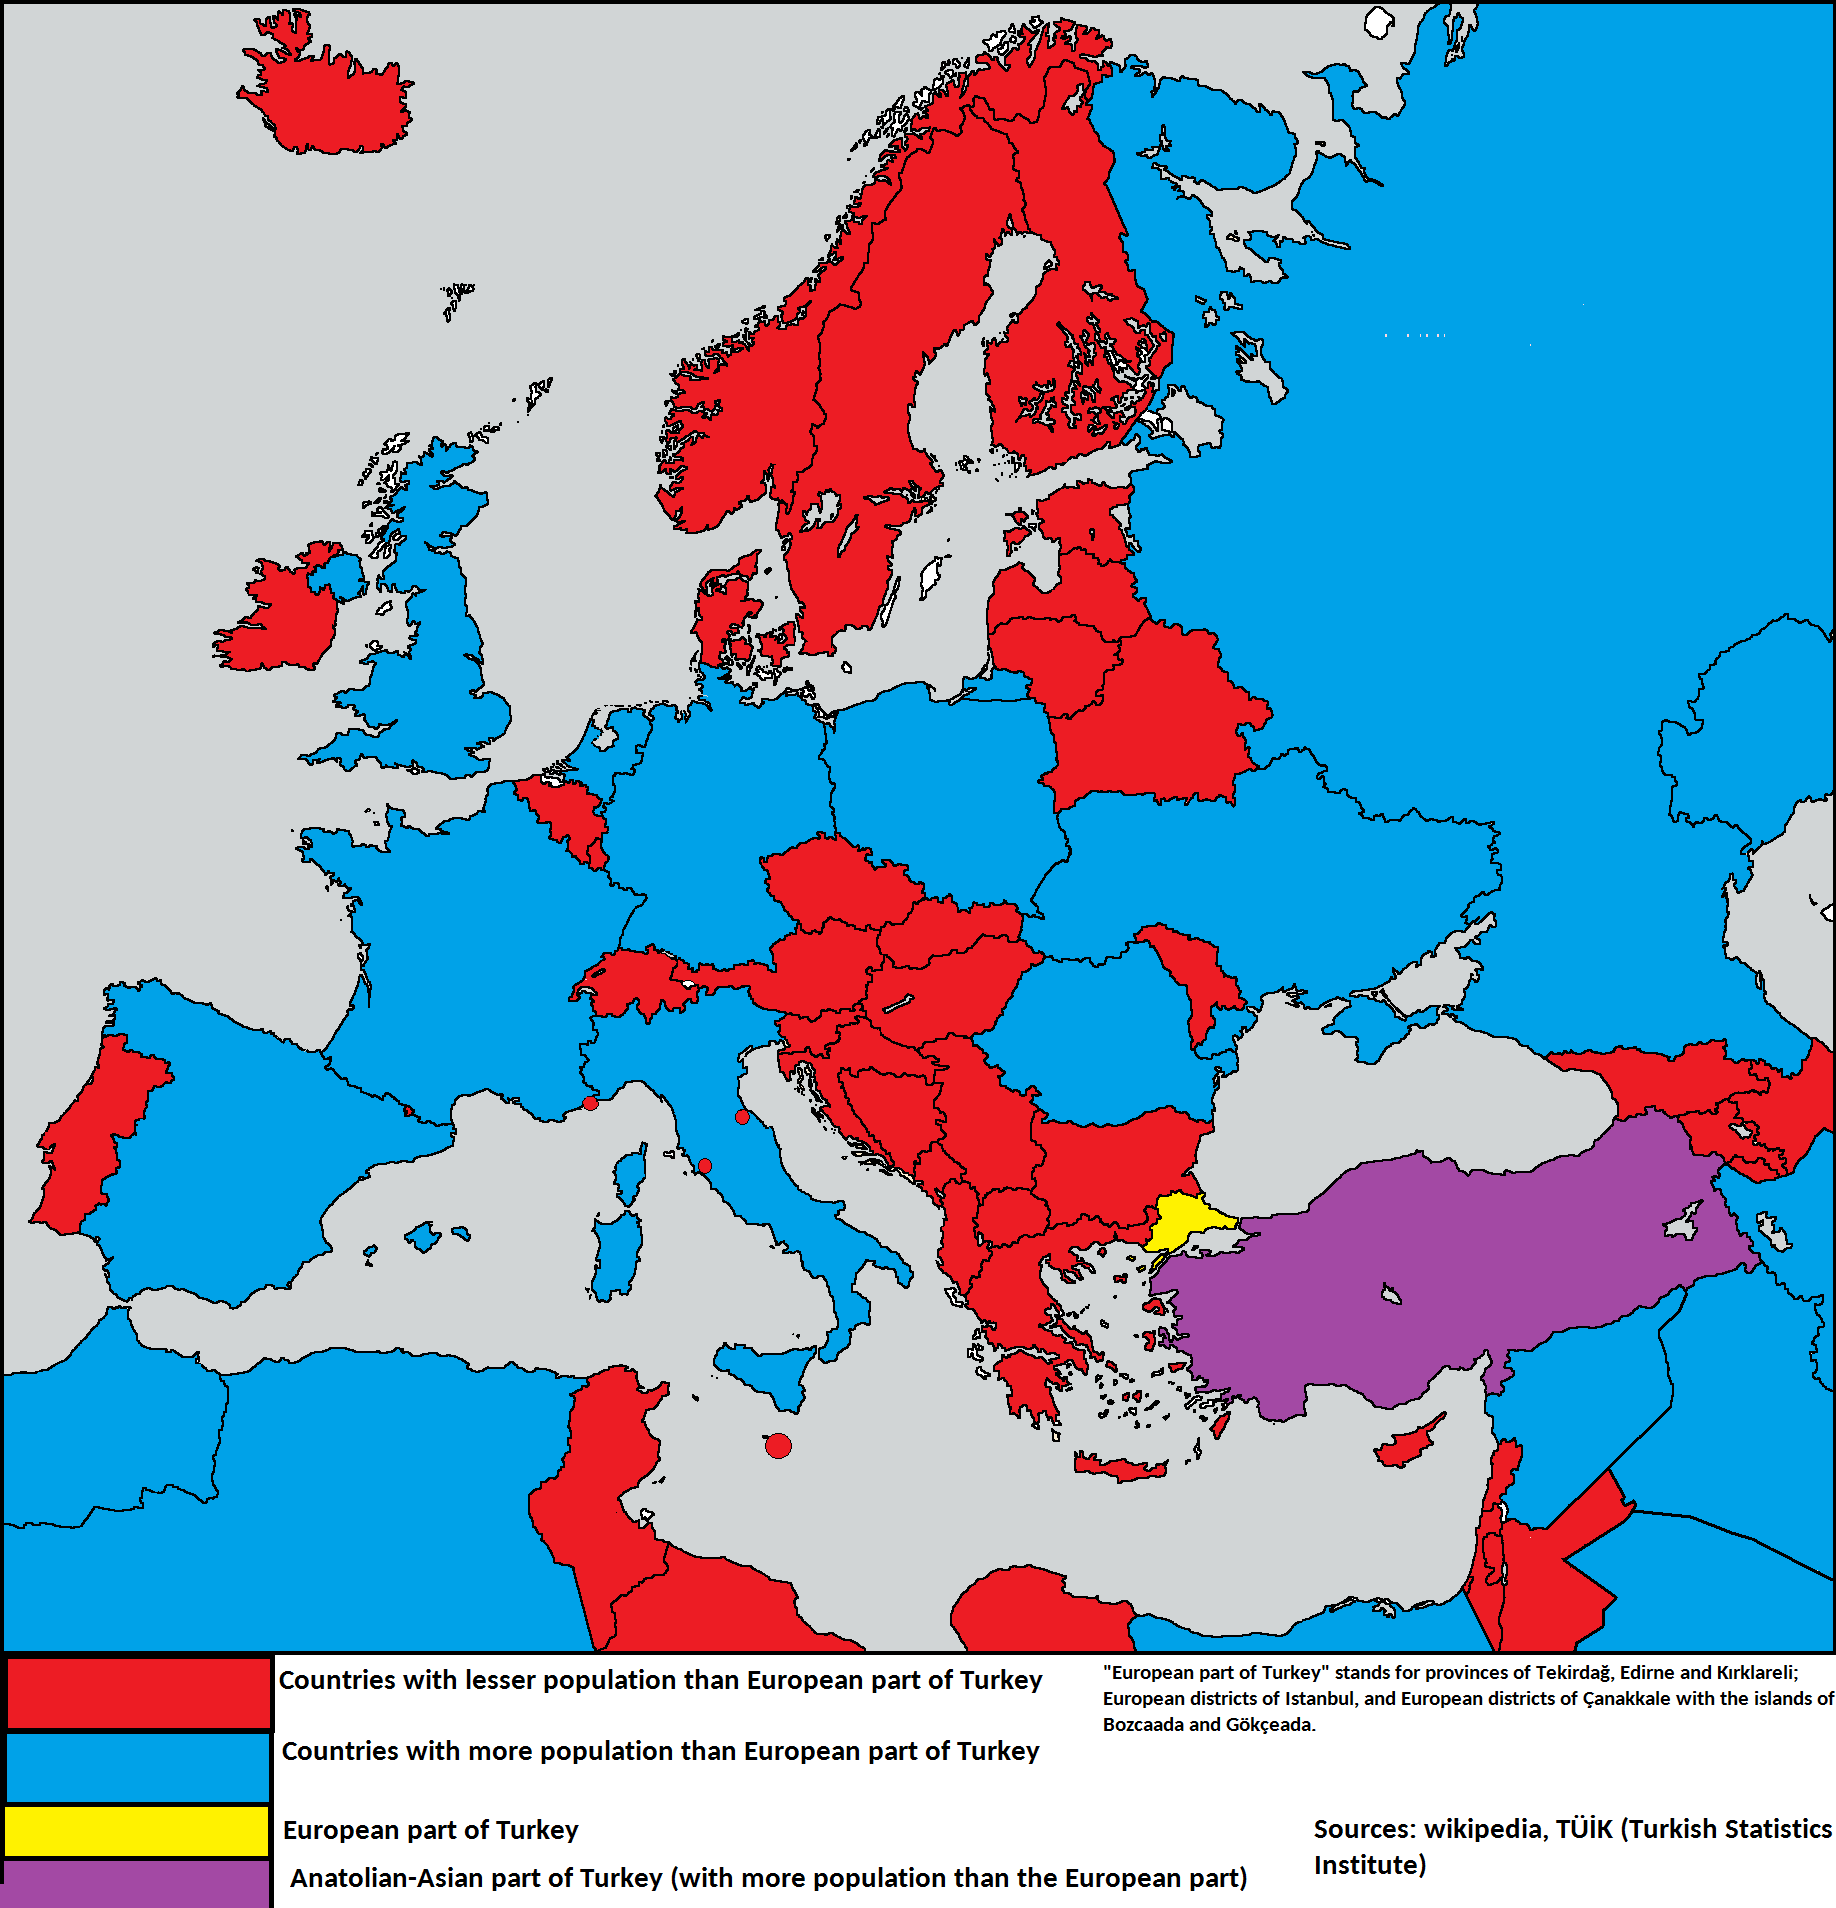 population comparison of european part of turkey aka thrace and countries of europe and